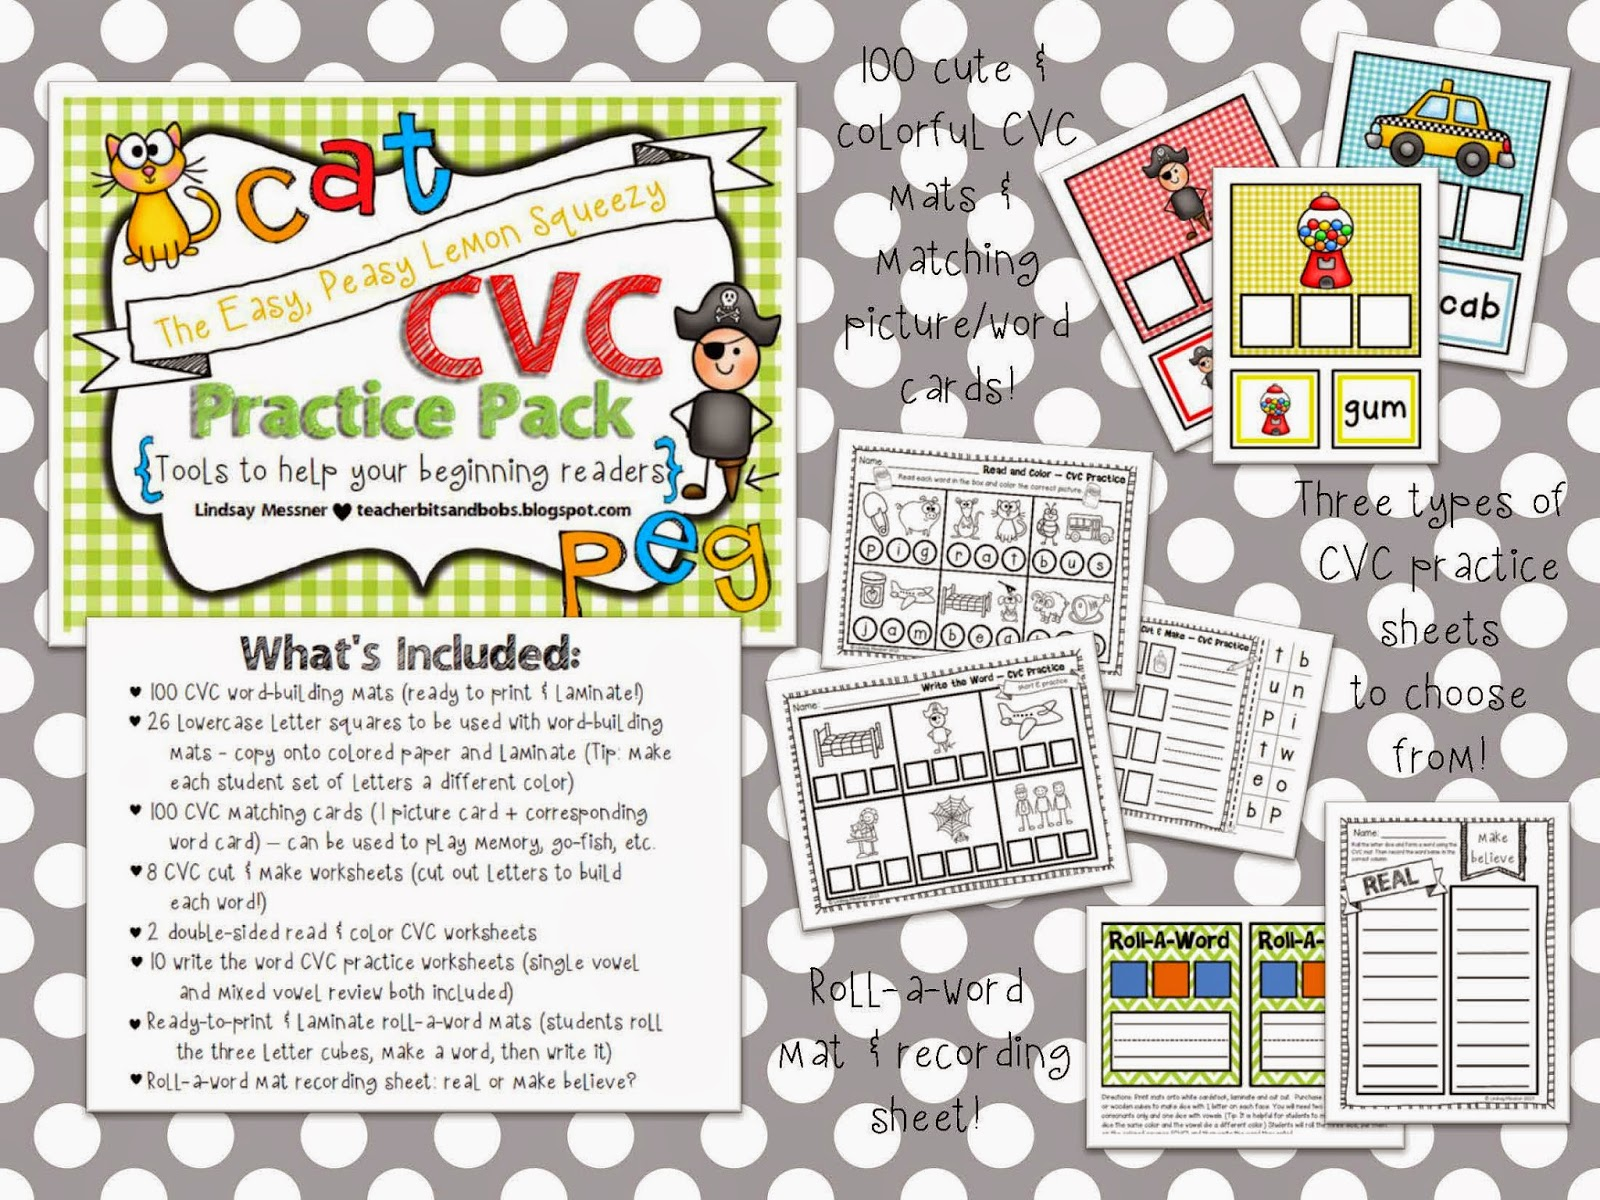 https://www.teacherspayteachers.com/Product/Easy-Peasy-Lemon-Squeezy-CVC-Practice-Pack-781876